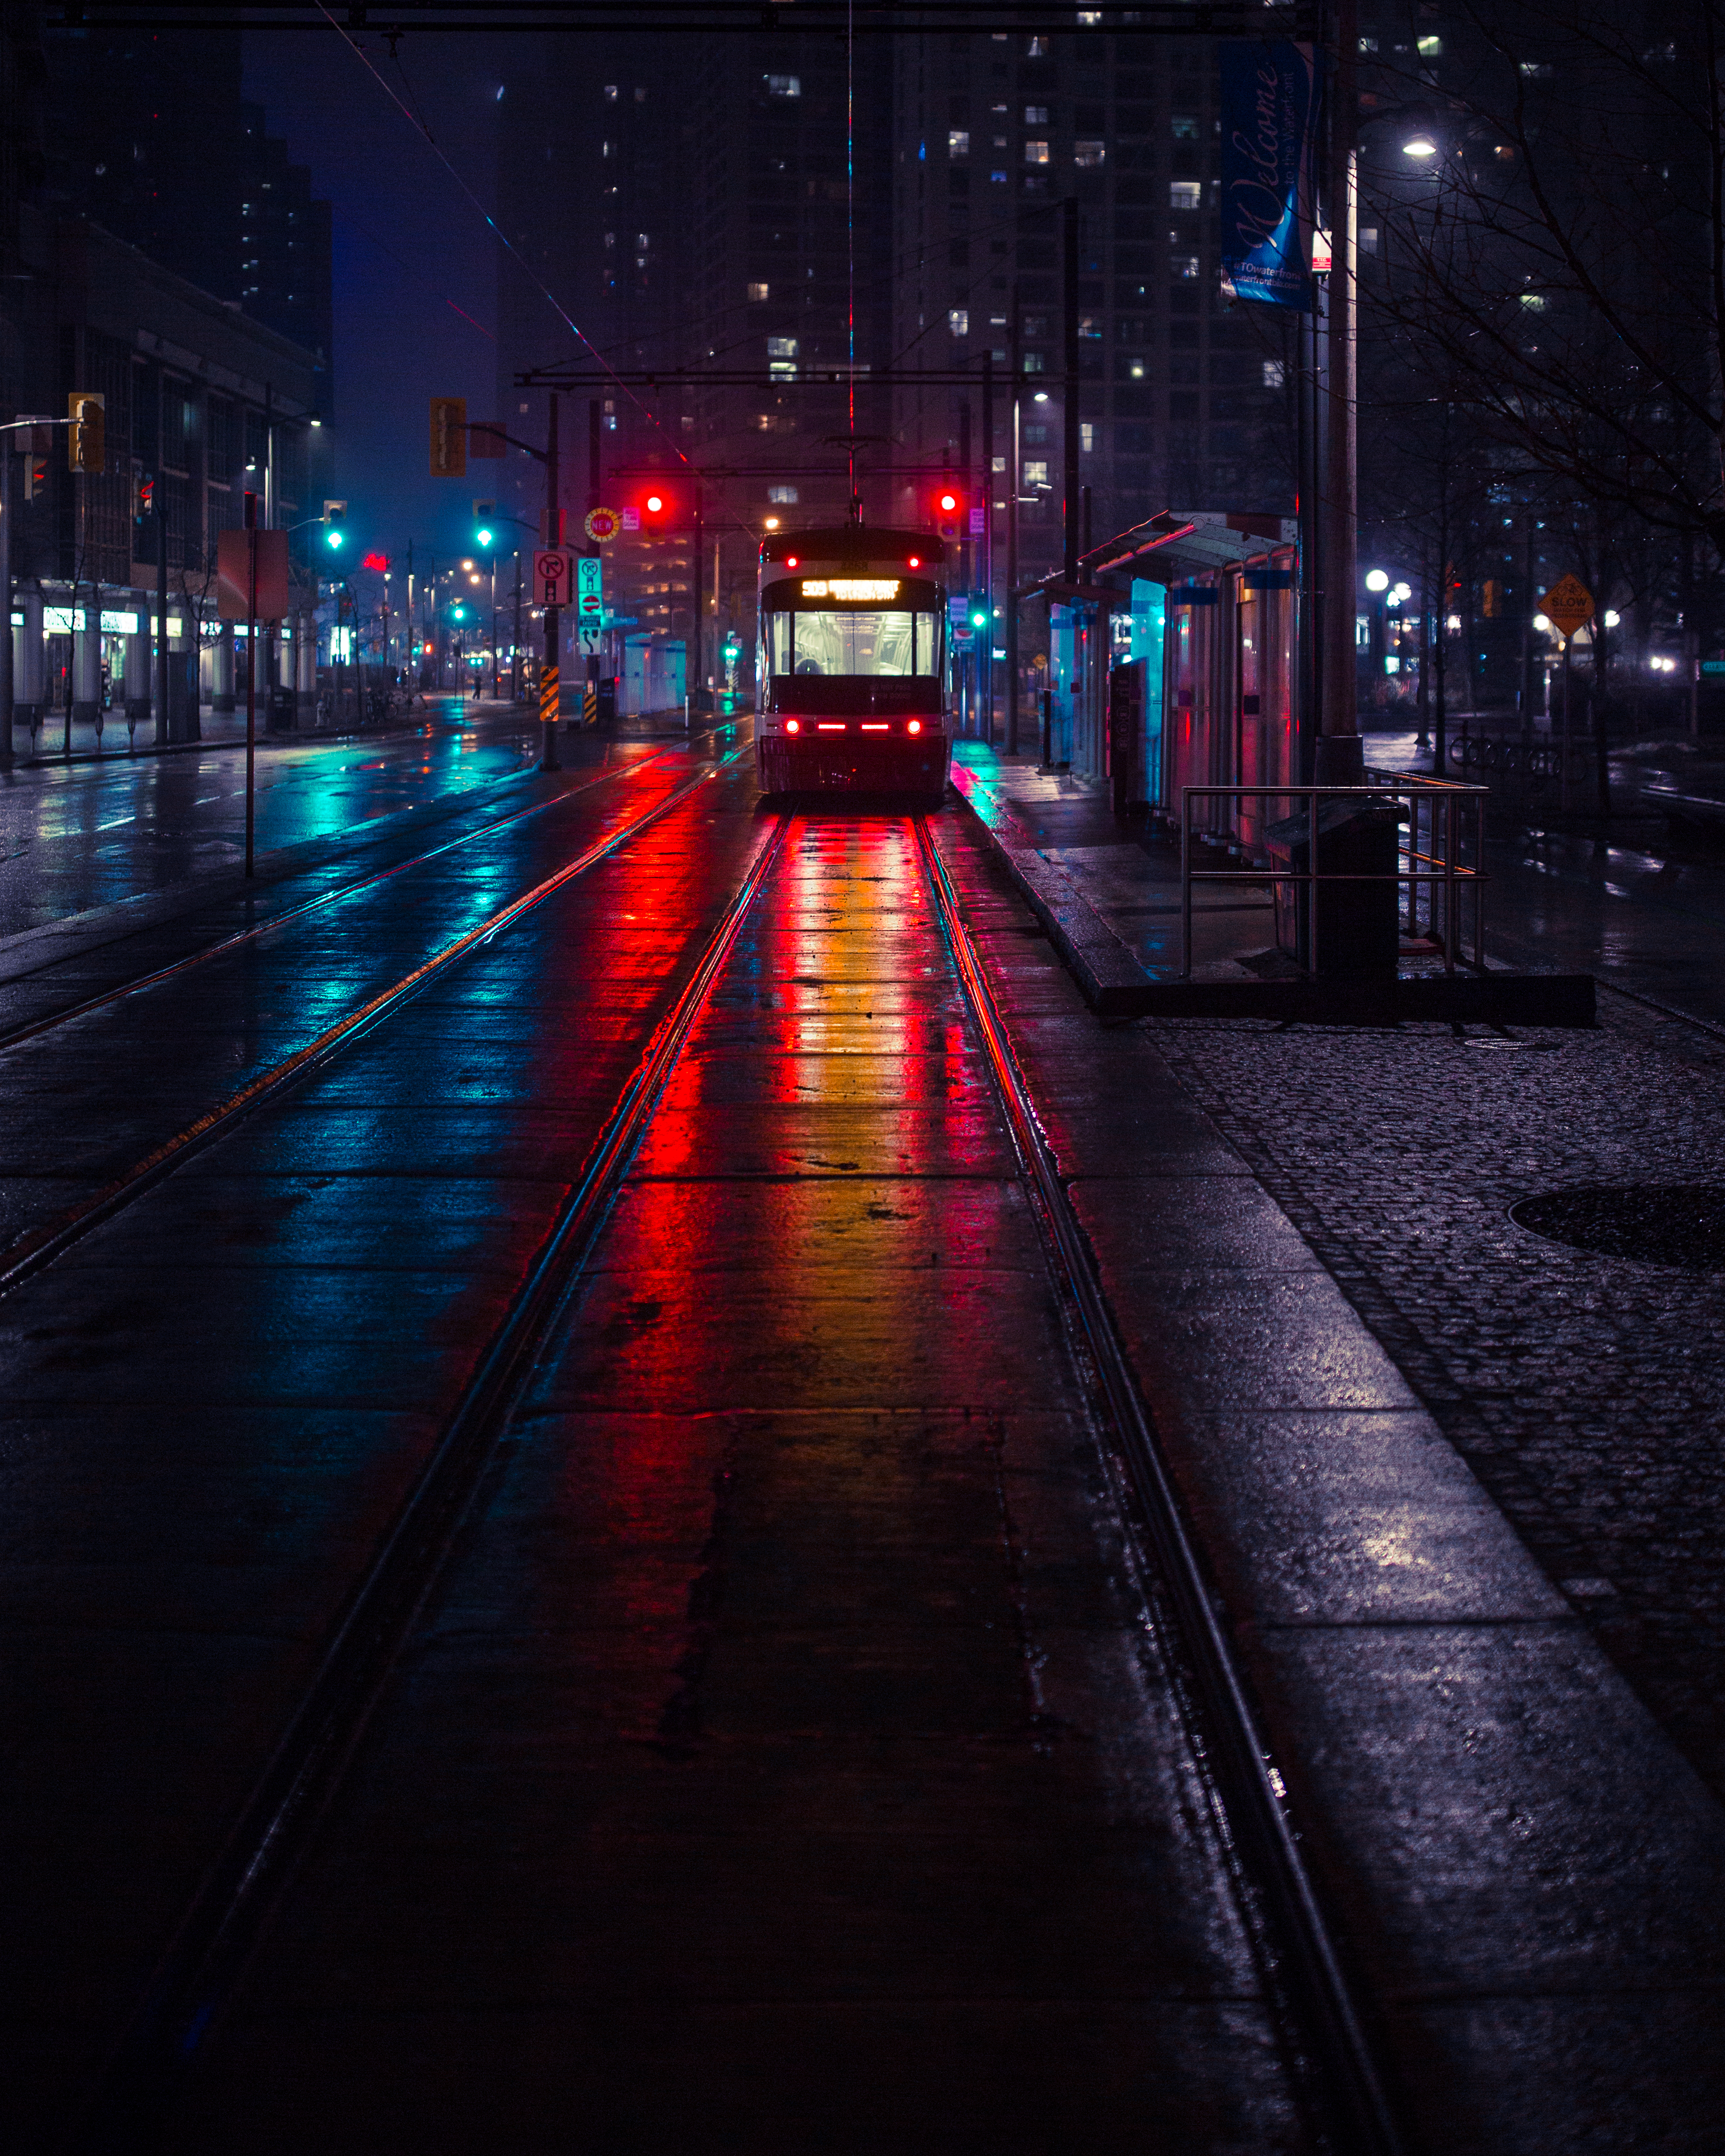 500+ City Night Pictures [HD] Download Free Images On Unsplash